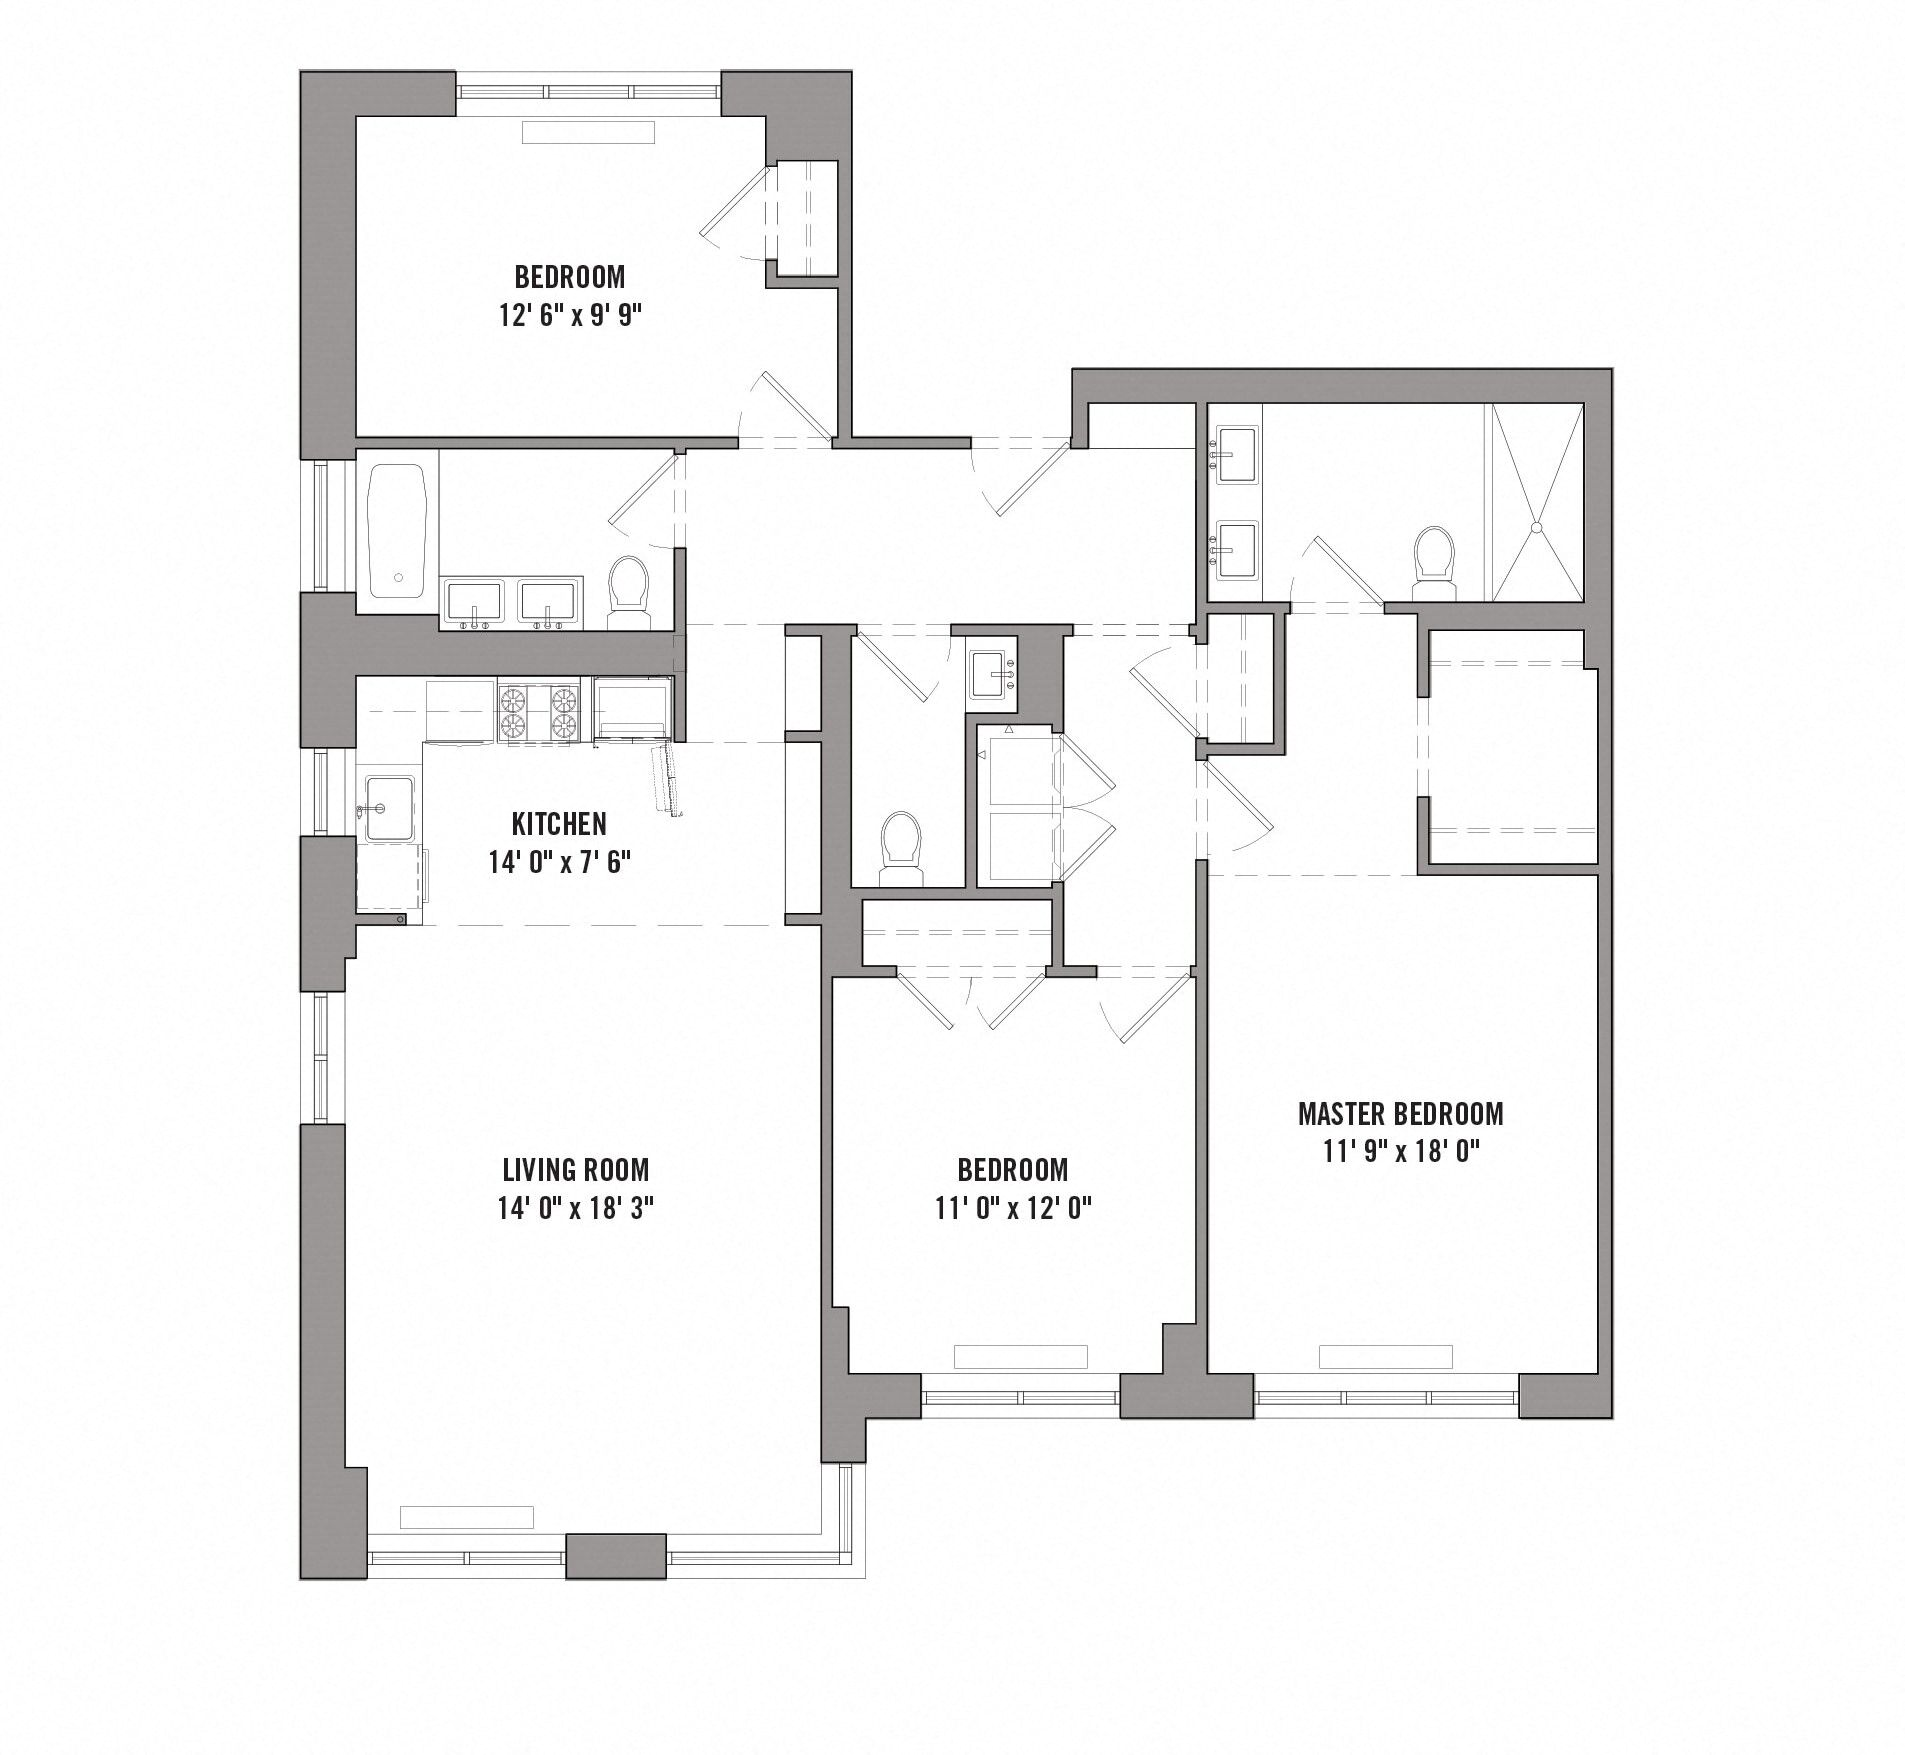 Floor plan diagram for unit PHB. 3 bedrooms, 2 bathrooms, kitchen, and living room.